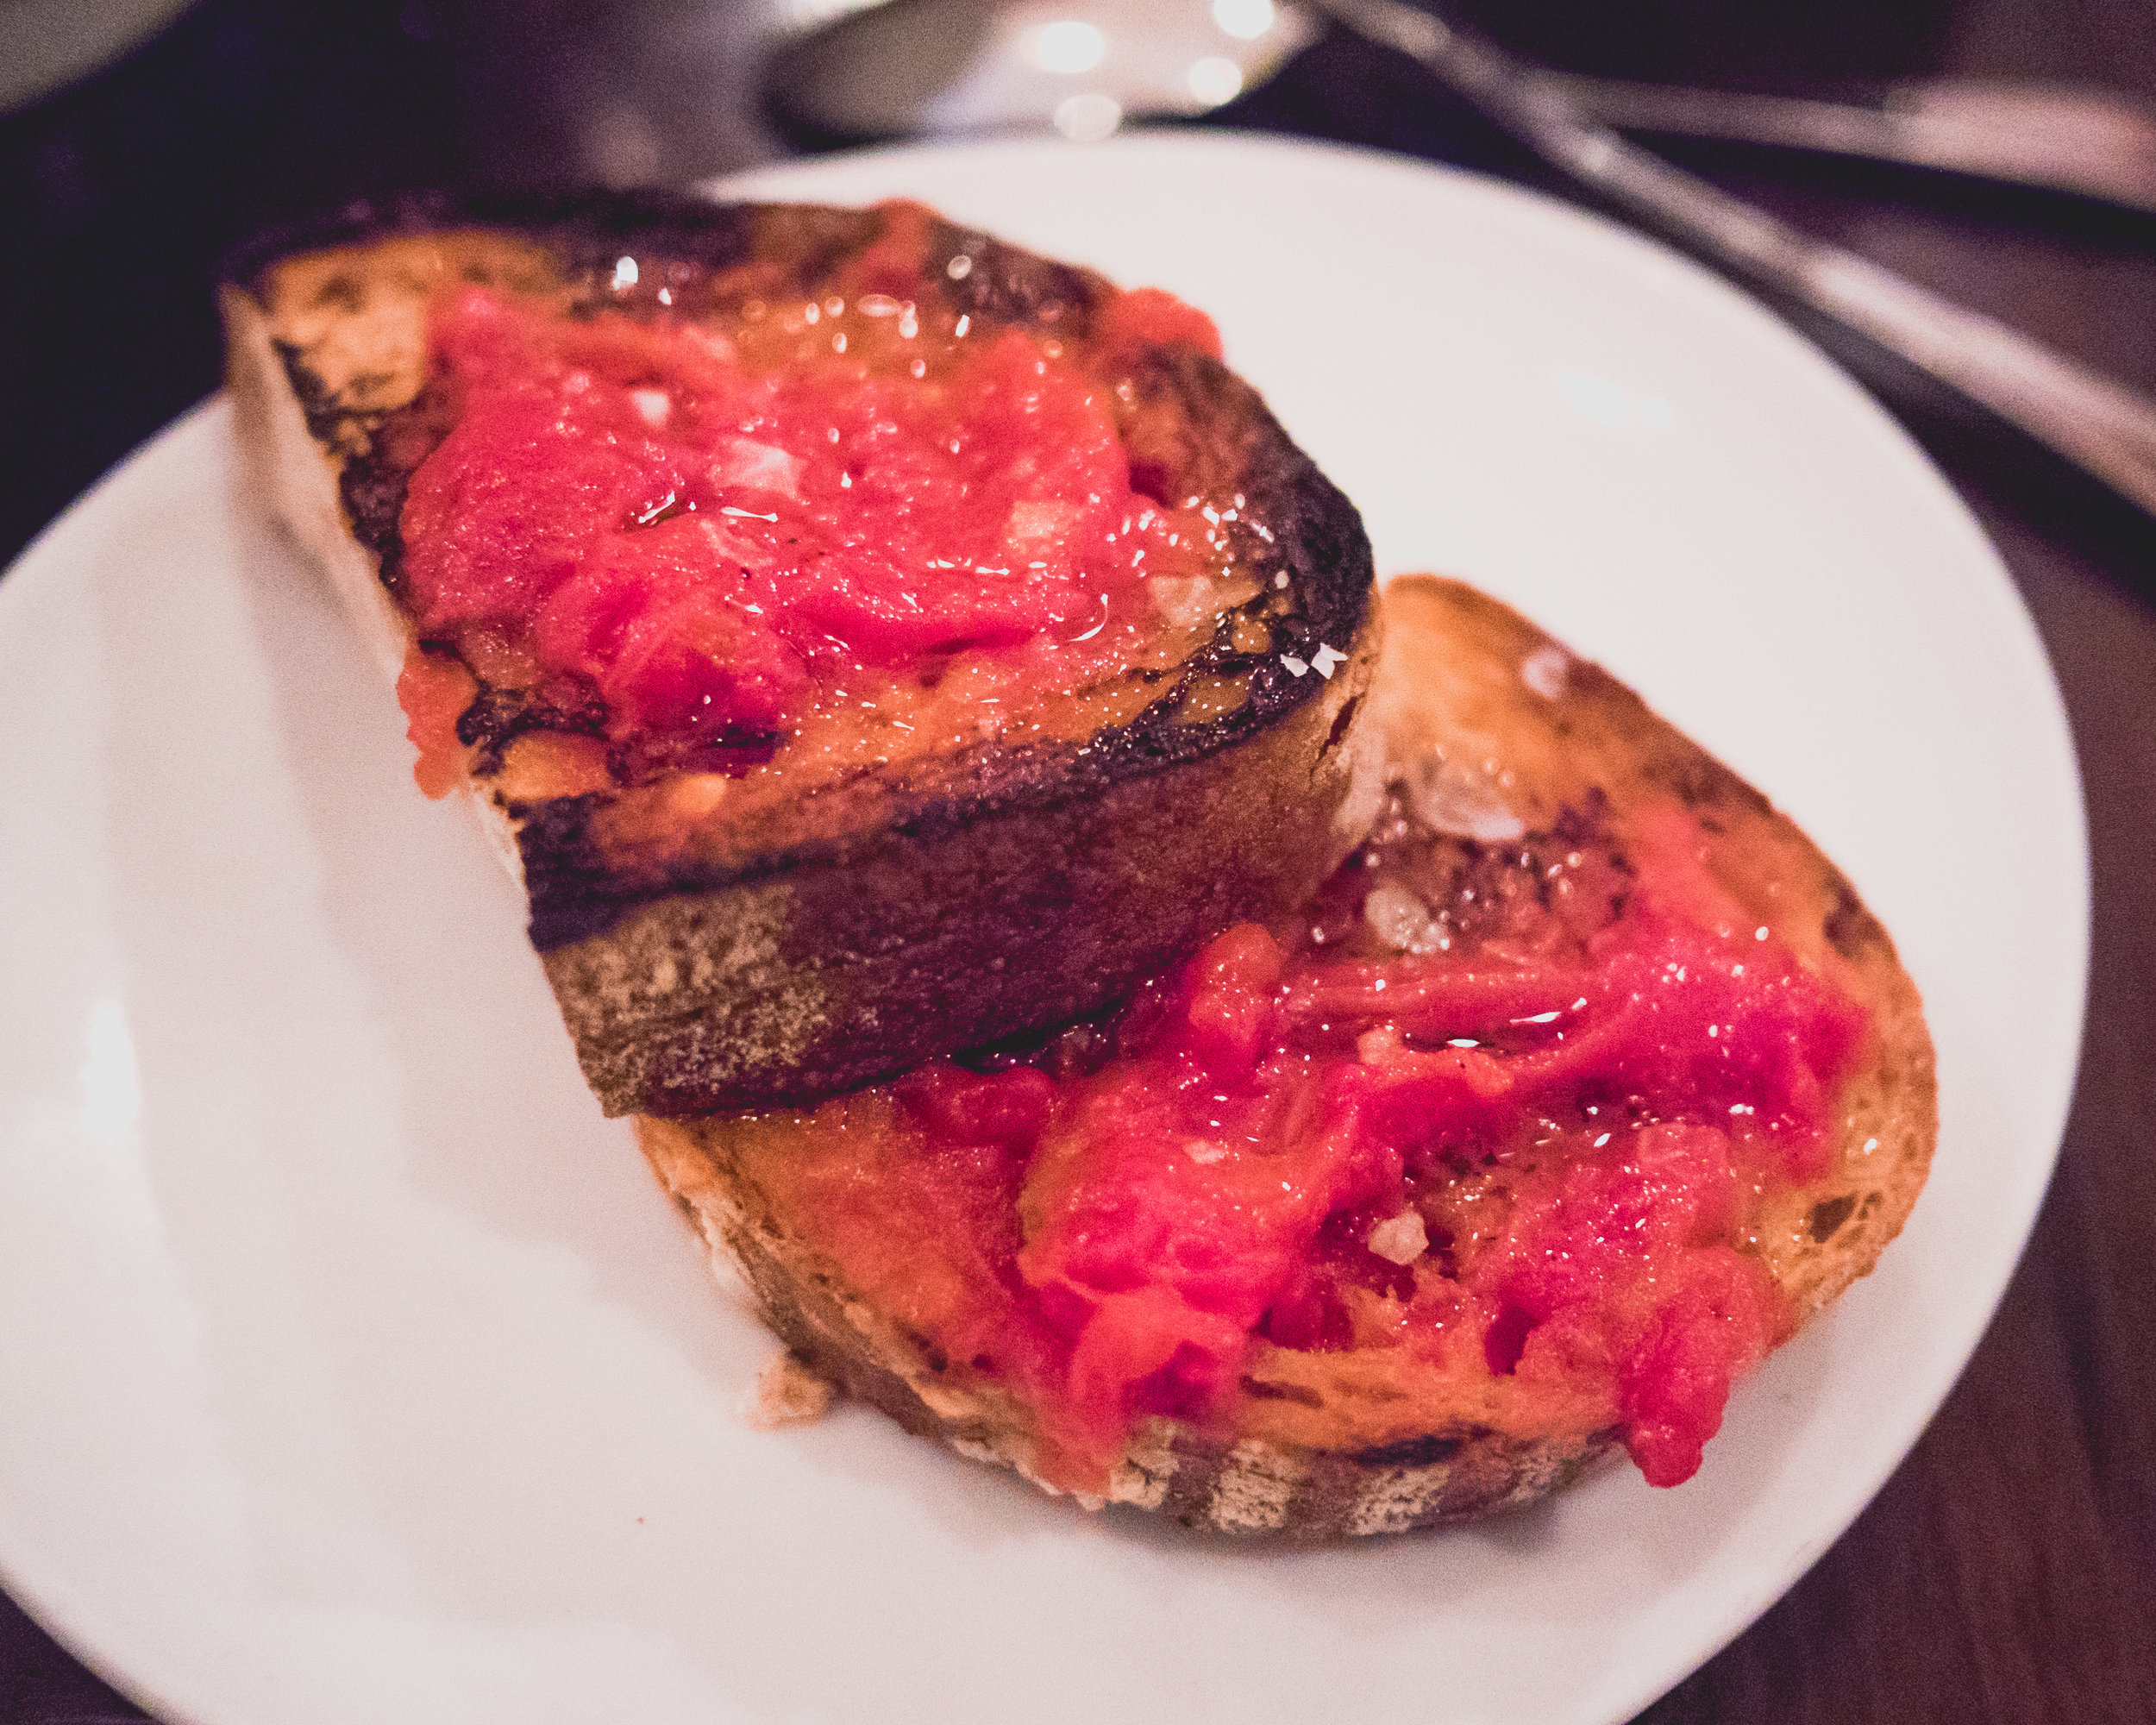 pan con tomate , served with the mussels.